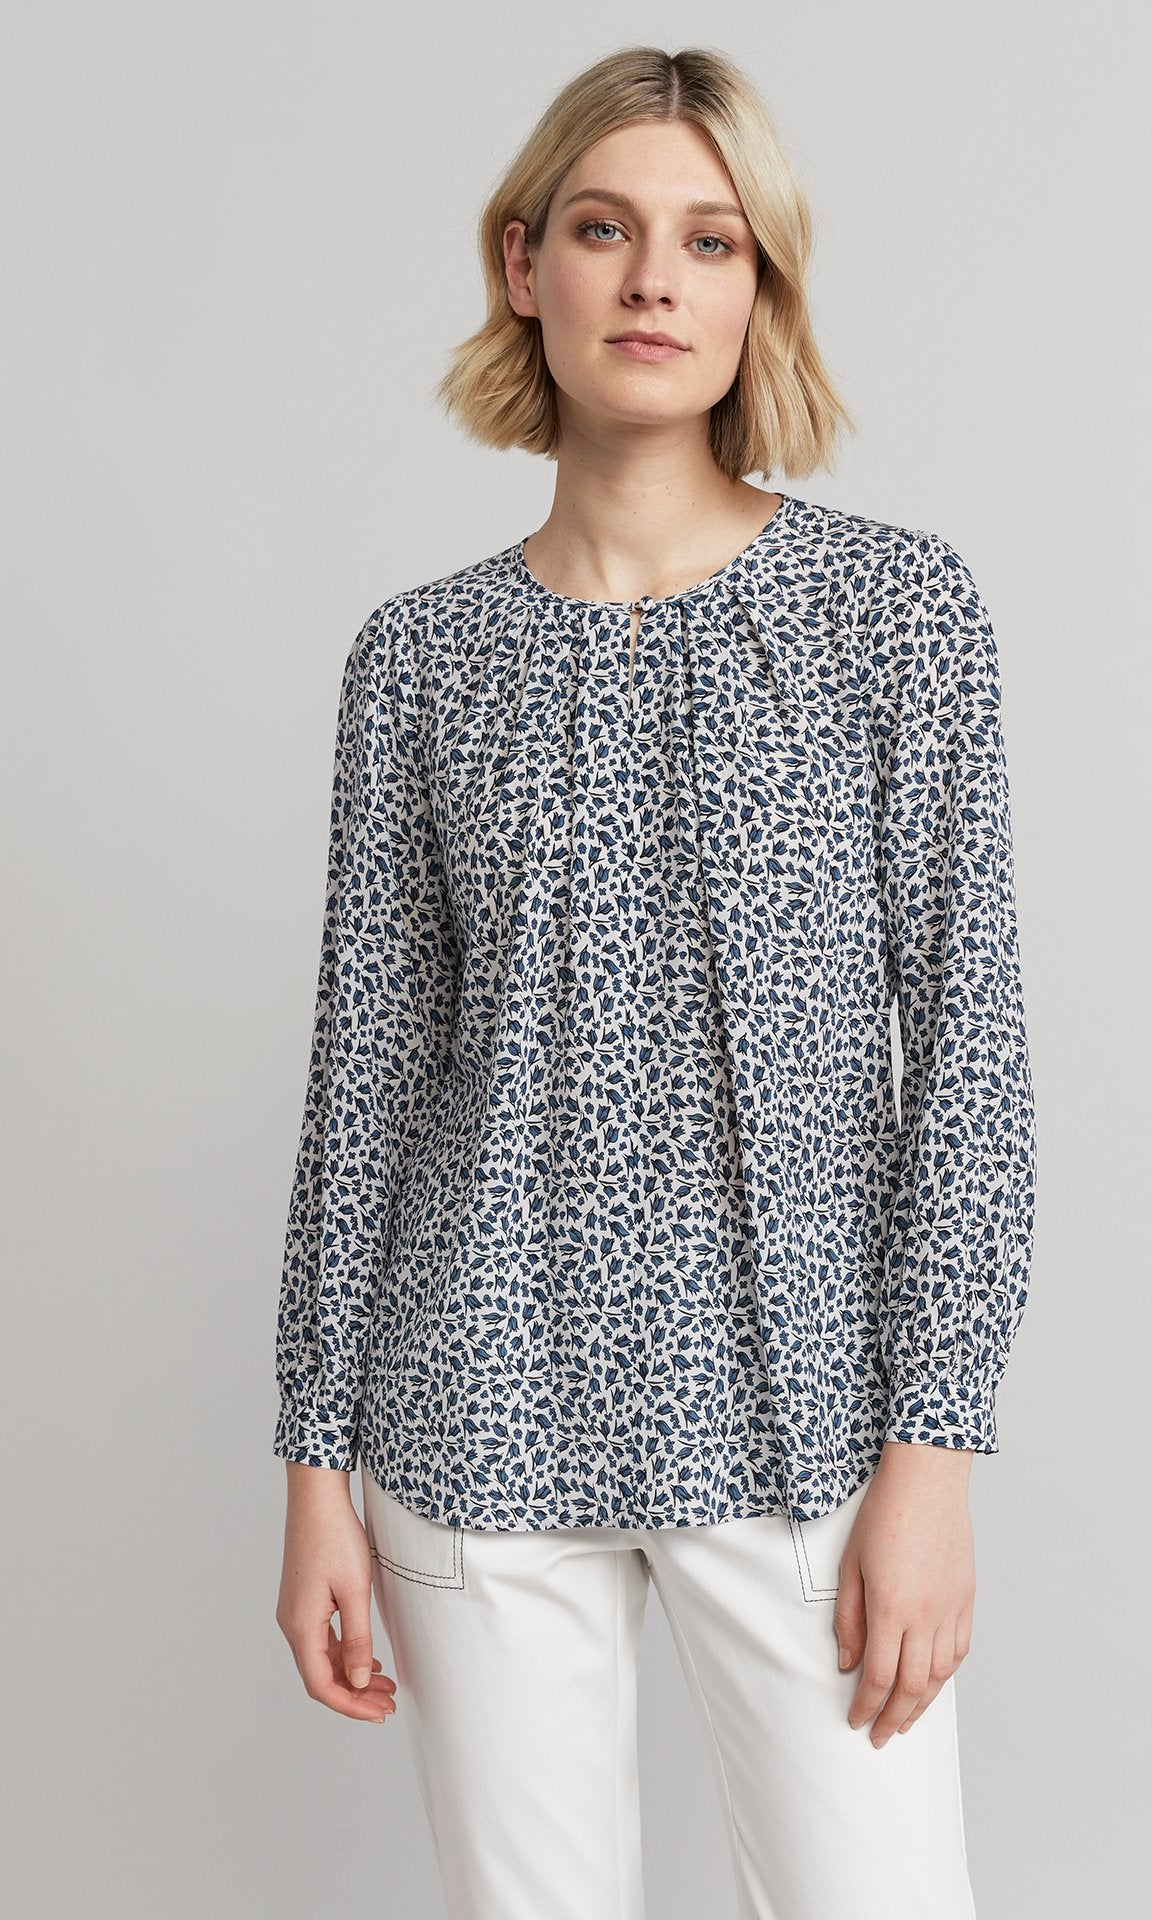 Frida Blouse - White/Blue